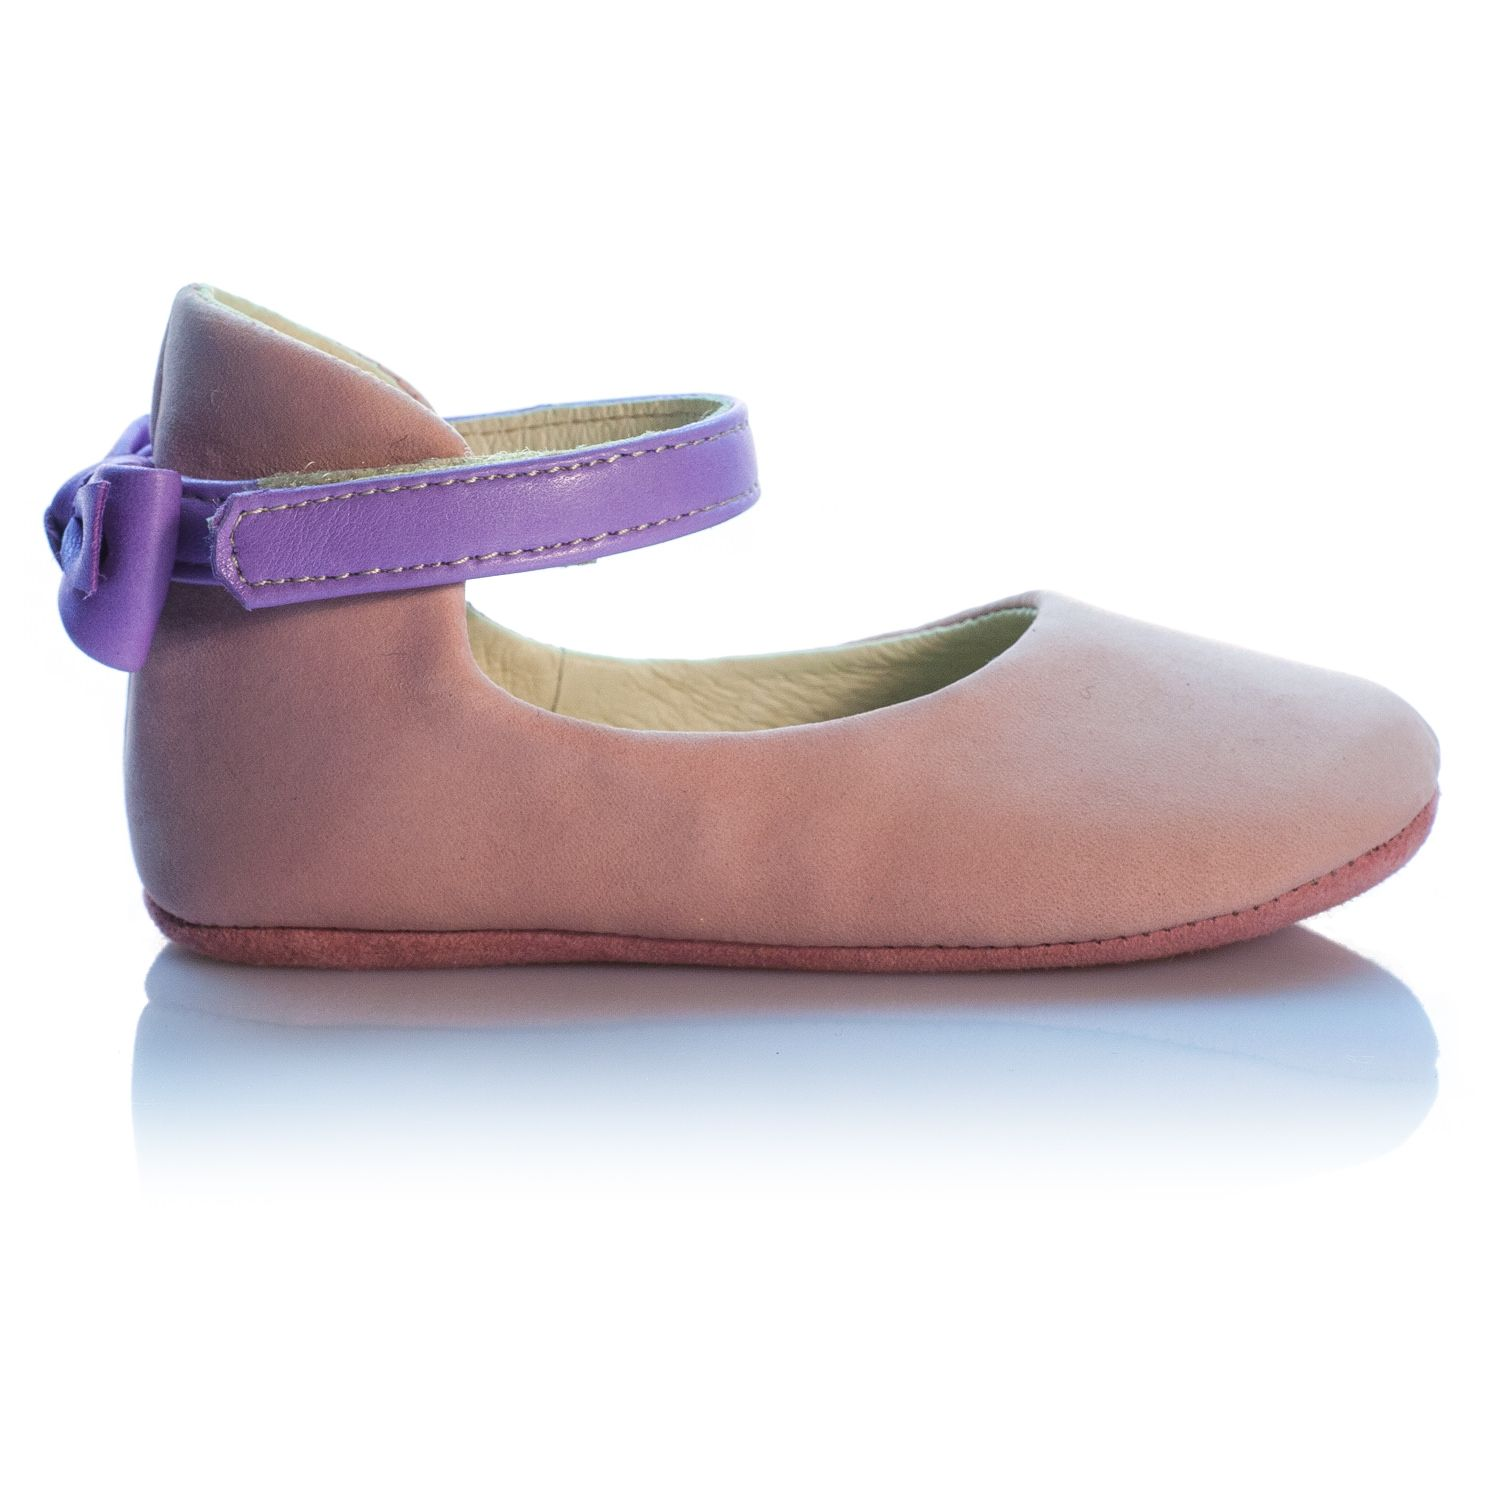 c0c3a6f09cd31 VIBYS handmade blush pink leather ballet flats for little girls ...